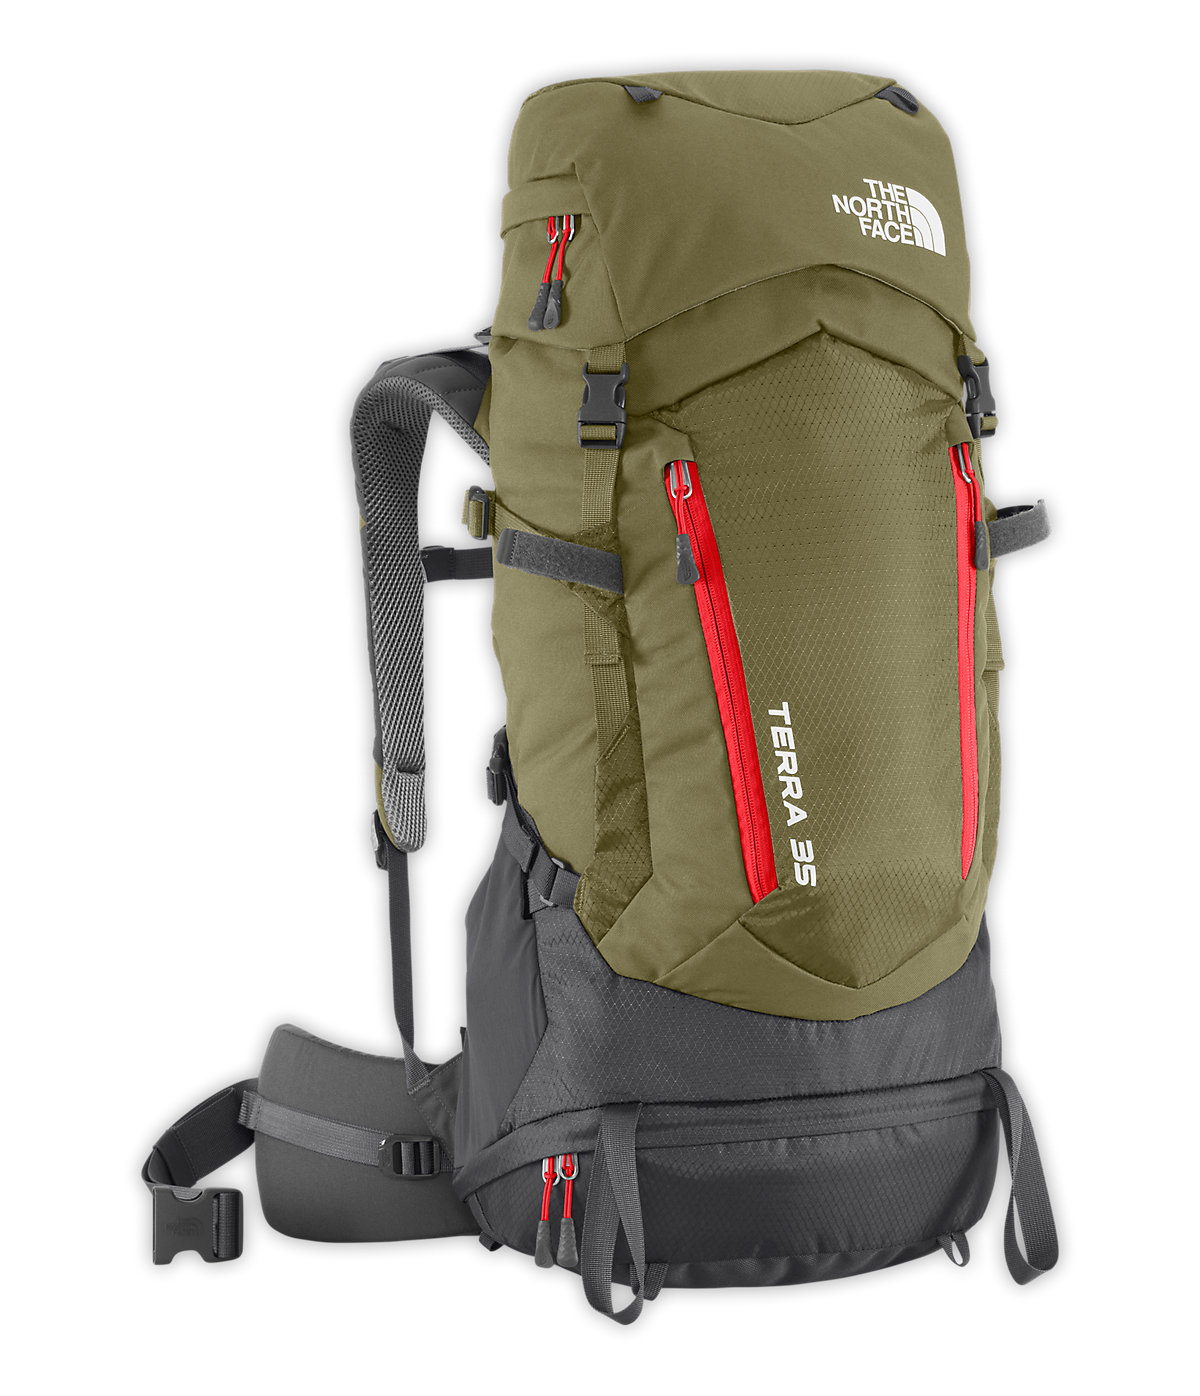 The North Face Terra 35 - Gear Review | Busted Wallet